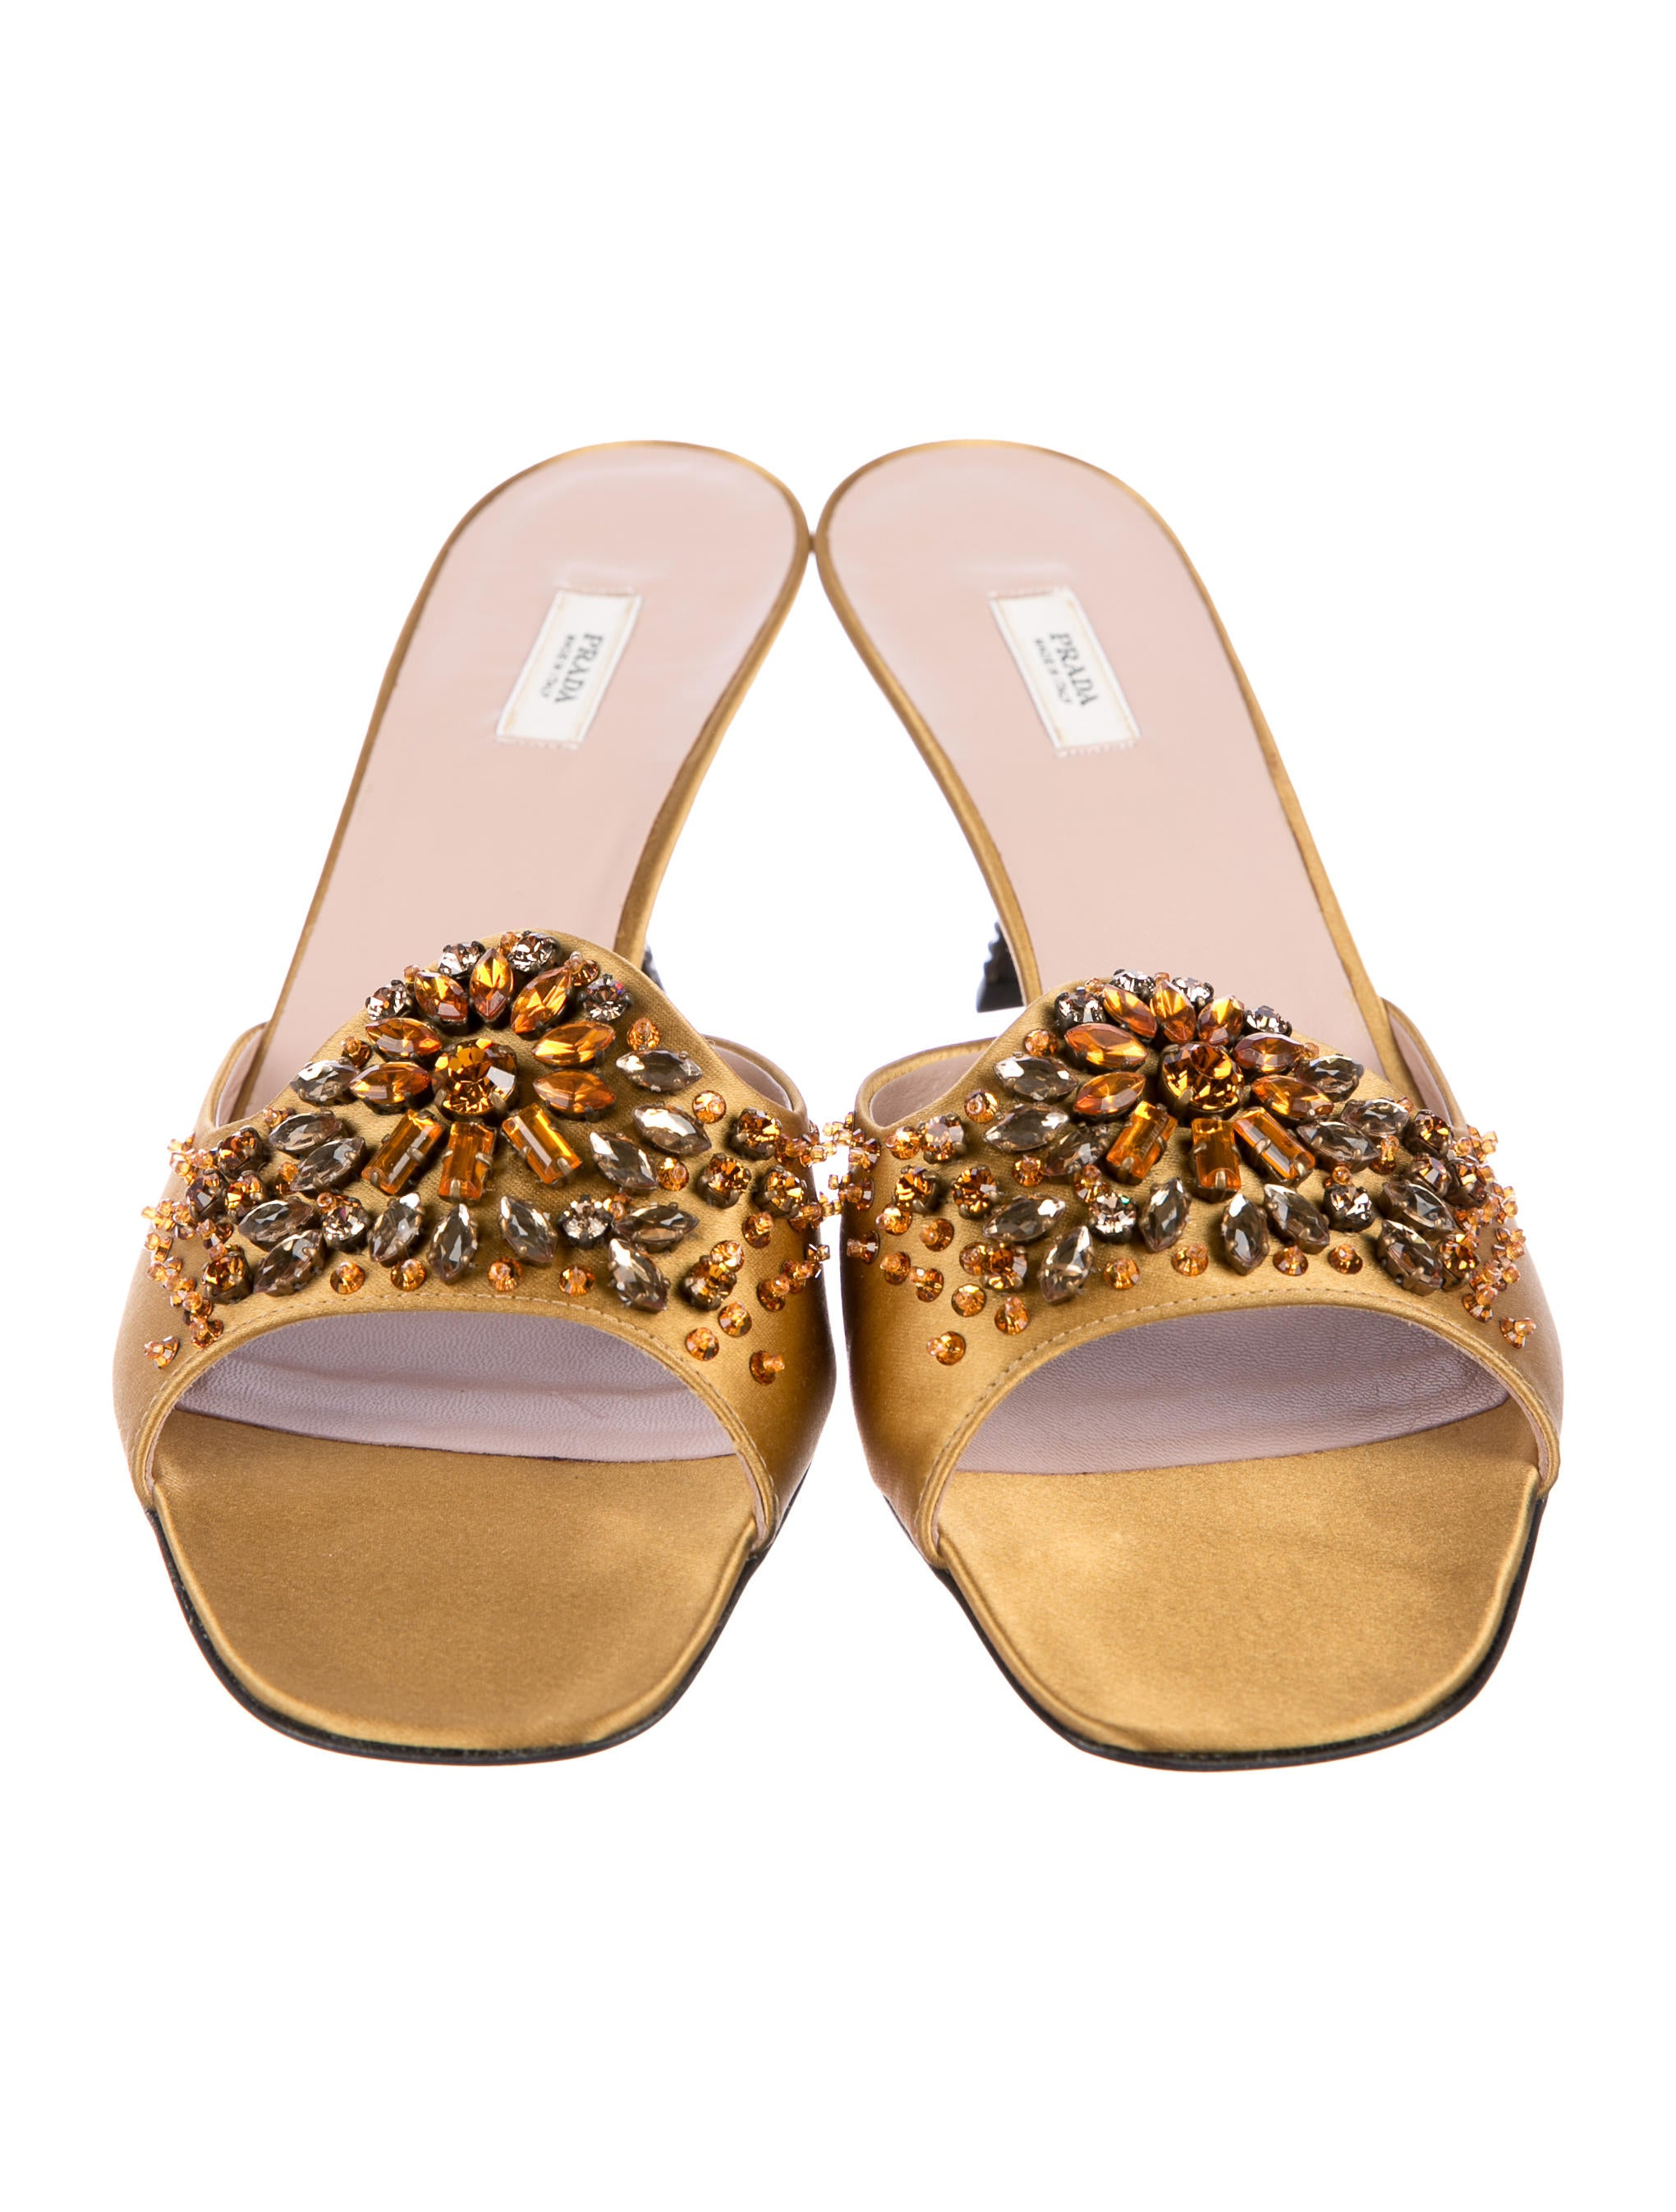 outlet release dates cheap affordable Prada Embellished Slide Sandals w/ Tags xoVbfOoQh